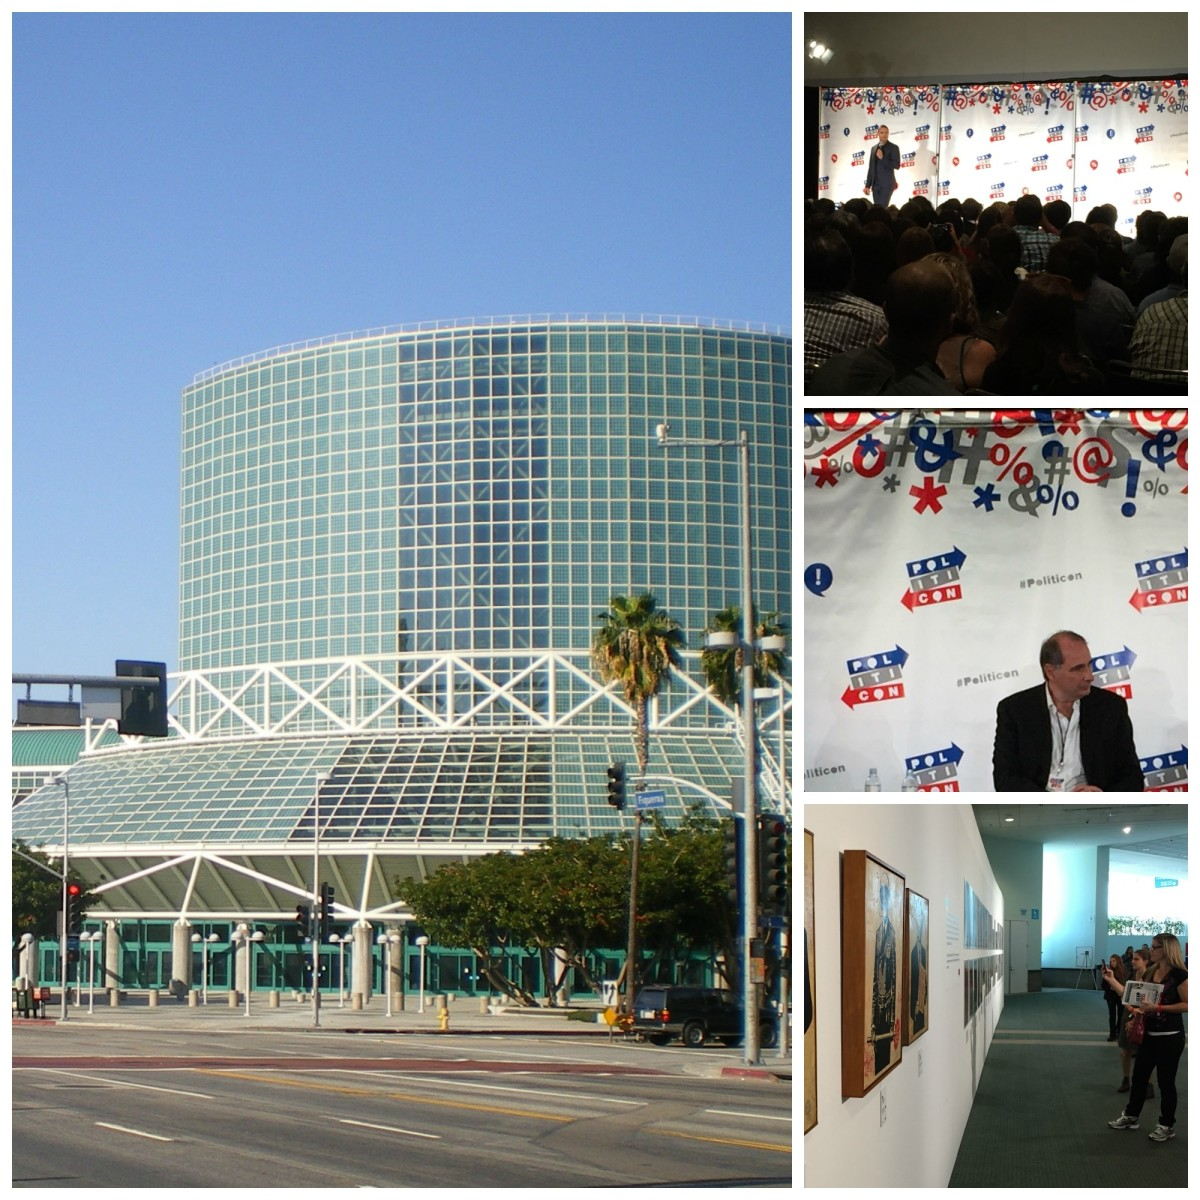 Clockwise from left: Los Angeles Convention Center (Photo: Wikimedia Commons); Trevor Noah performing live (Photo: Max Ufberg); David Axelrod sitting in on a panel (Photo: Max Ufberg); Politicon attendees viewing a featured art exhibit (Photo: Max Ufberg).